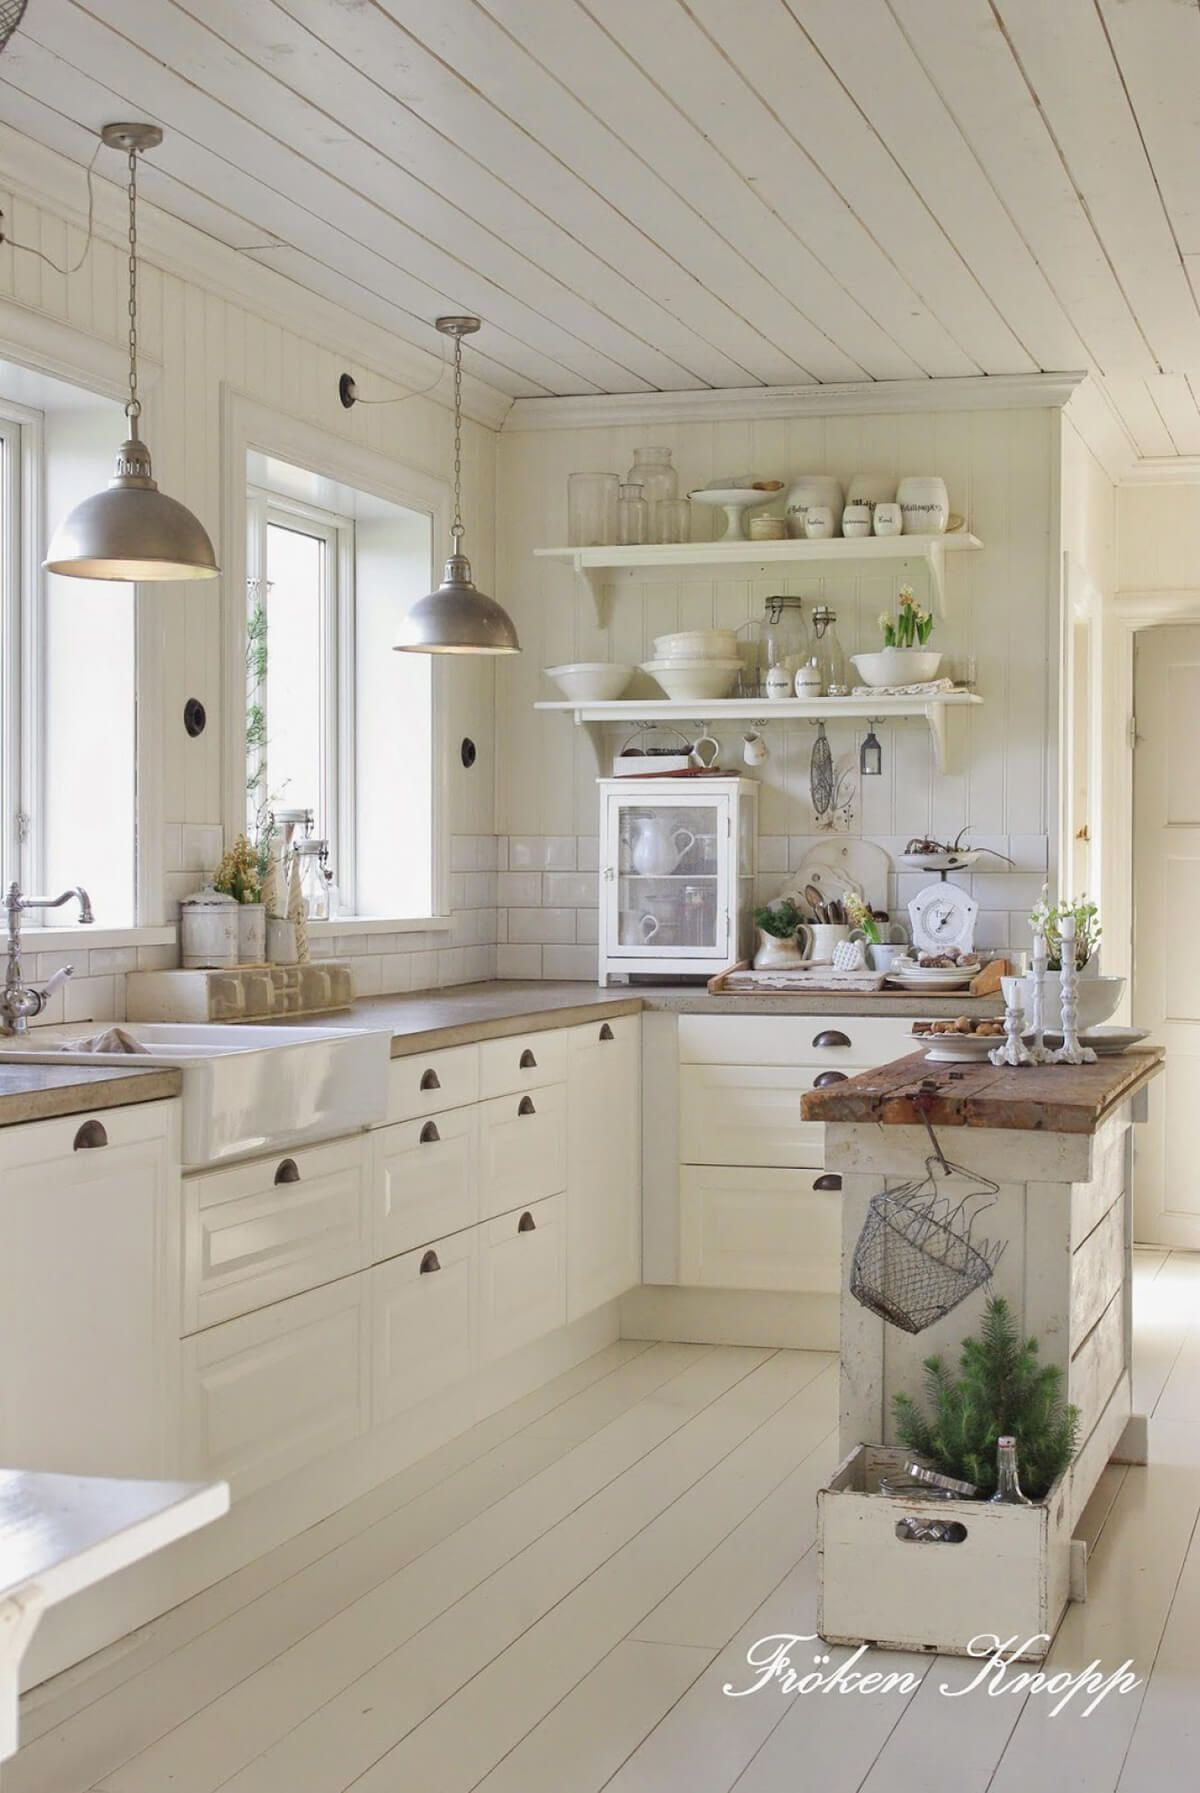 French Country Kitchen Interesting 35 Charming French Country Decor Ideas With Timeless Appeal Design Ideas